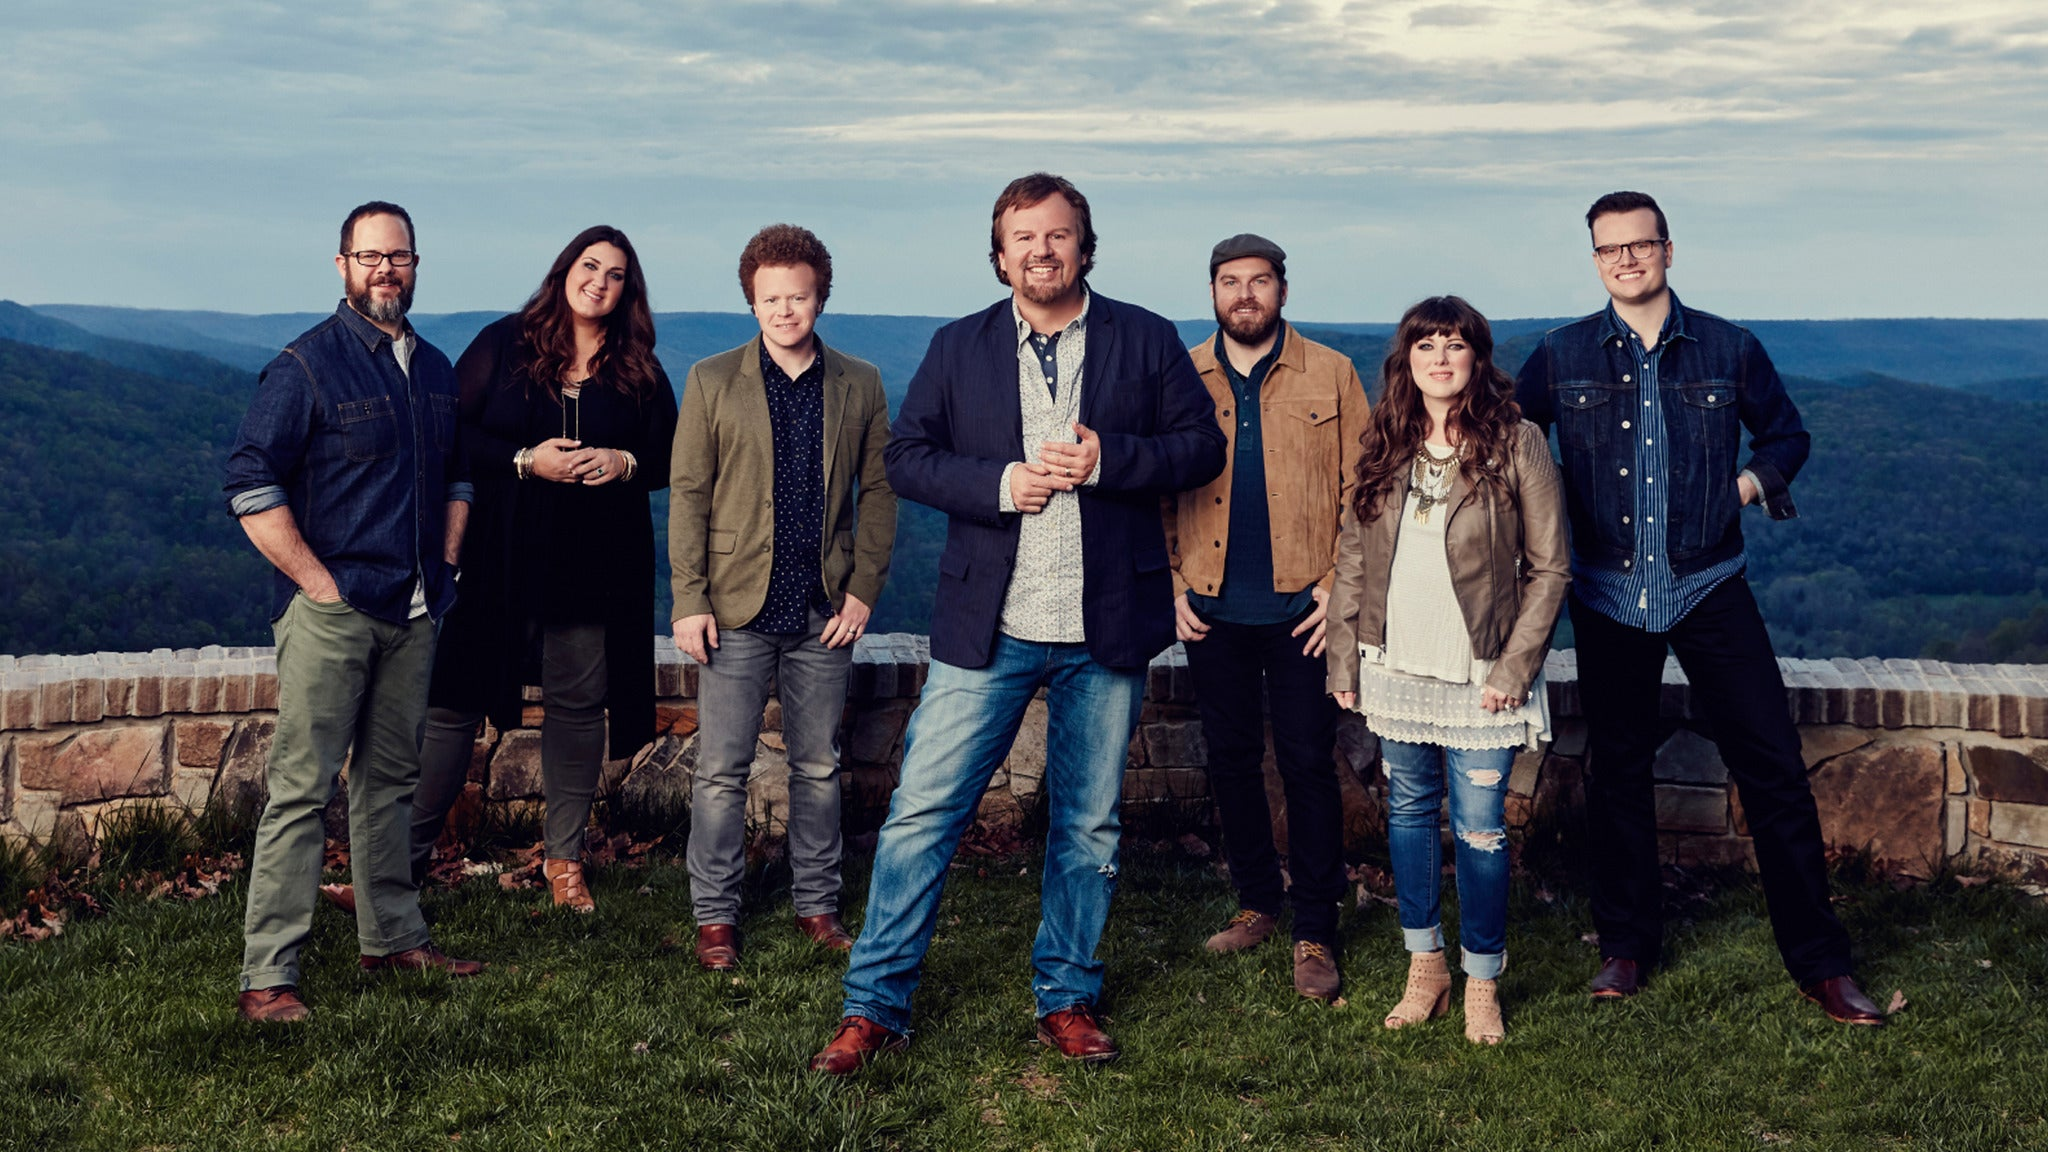 Casting Crowns at Charleston Coliseum & Convention Center